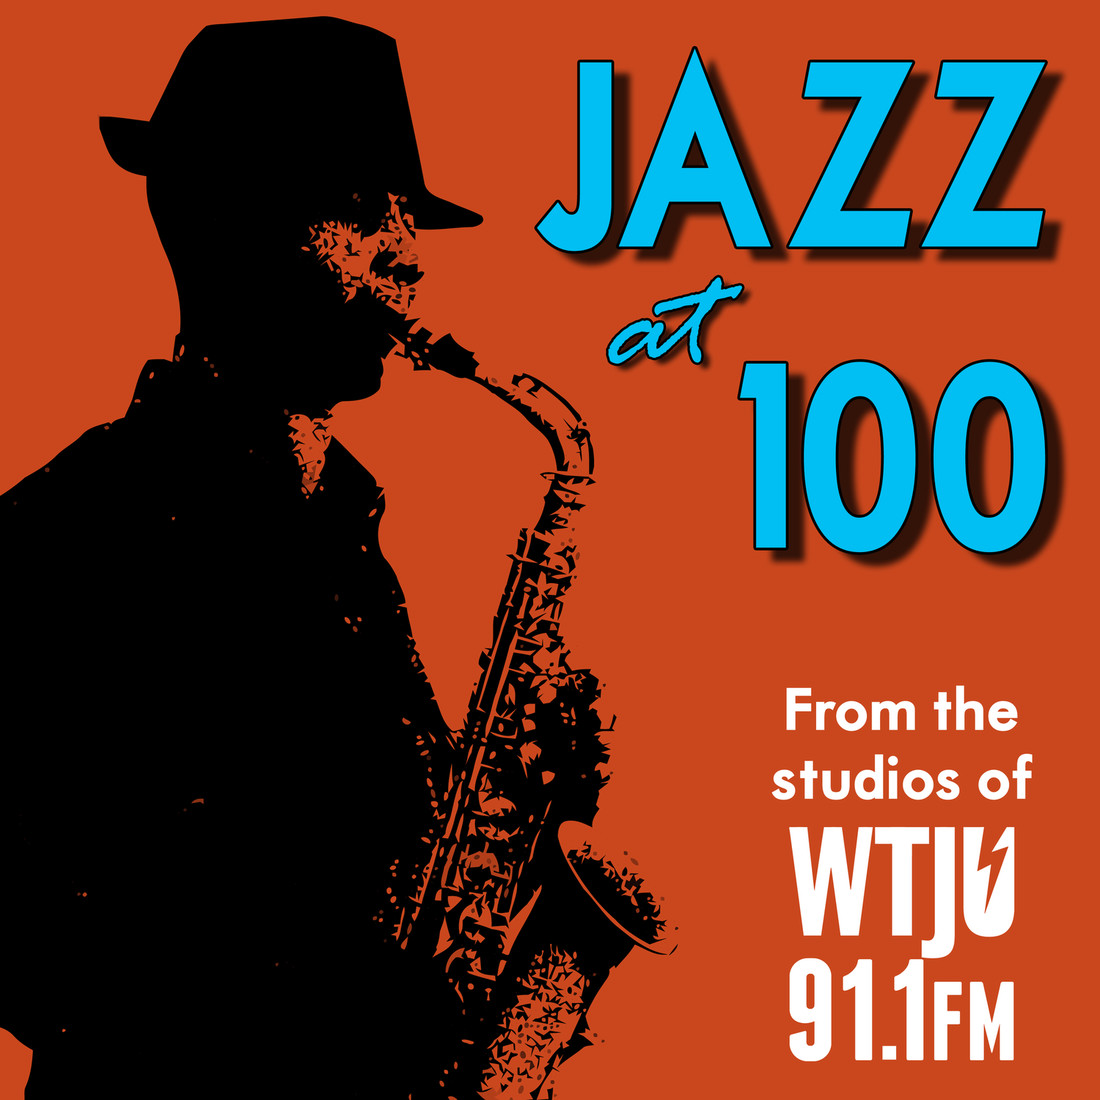 Jazz-at-100-poster--high-res.jpg-2.jpg